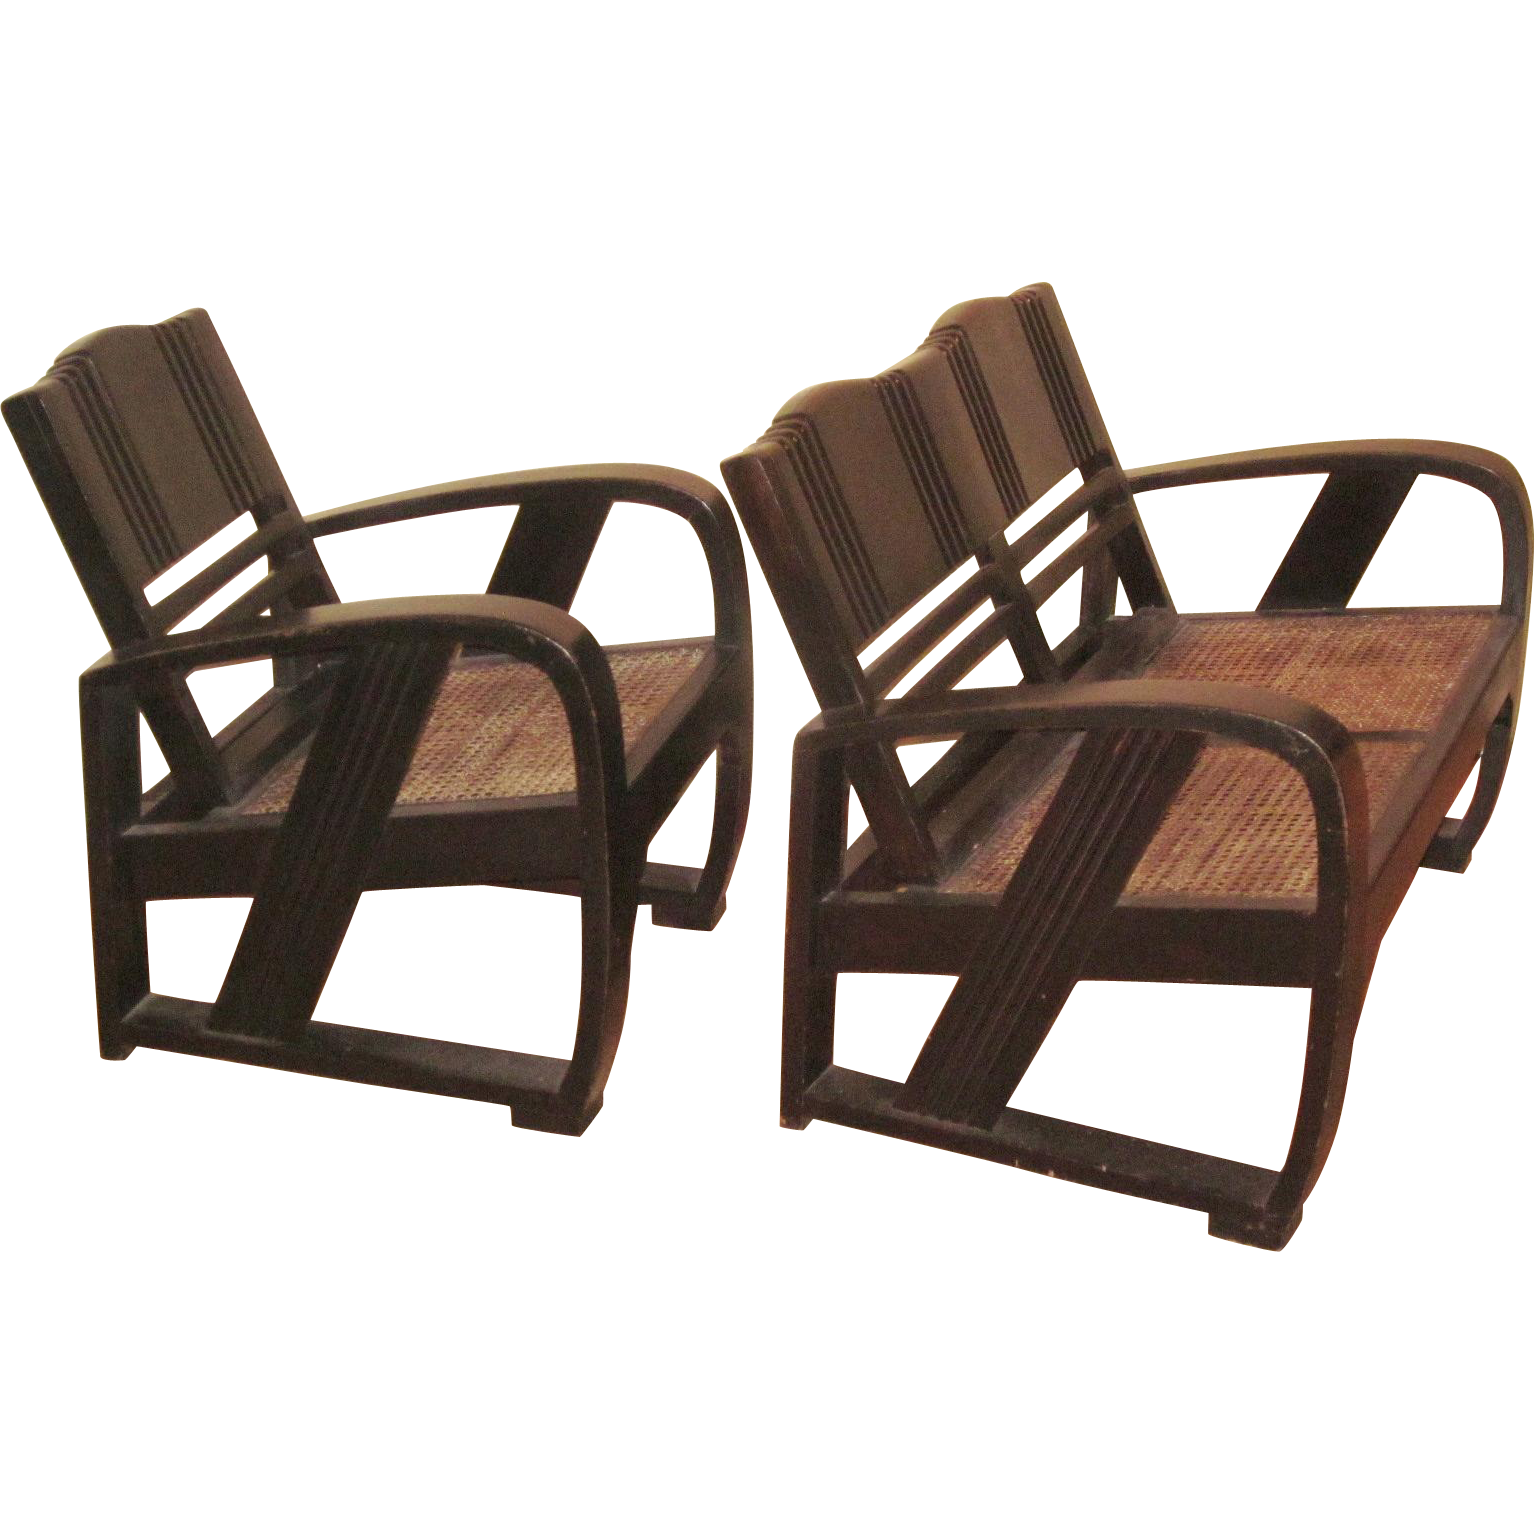 art deco outdoor furniture. Chinese Art Deco Chair And Settee Outdoor Furniture